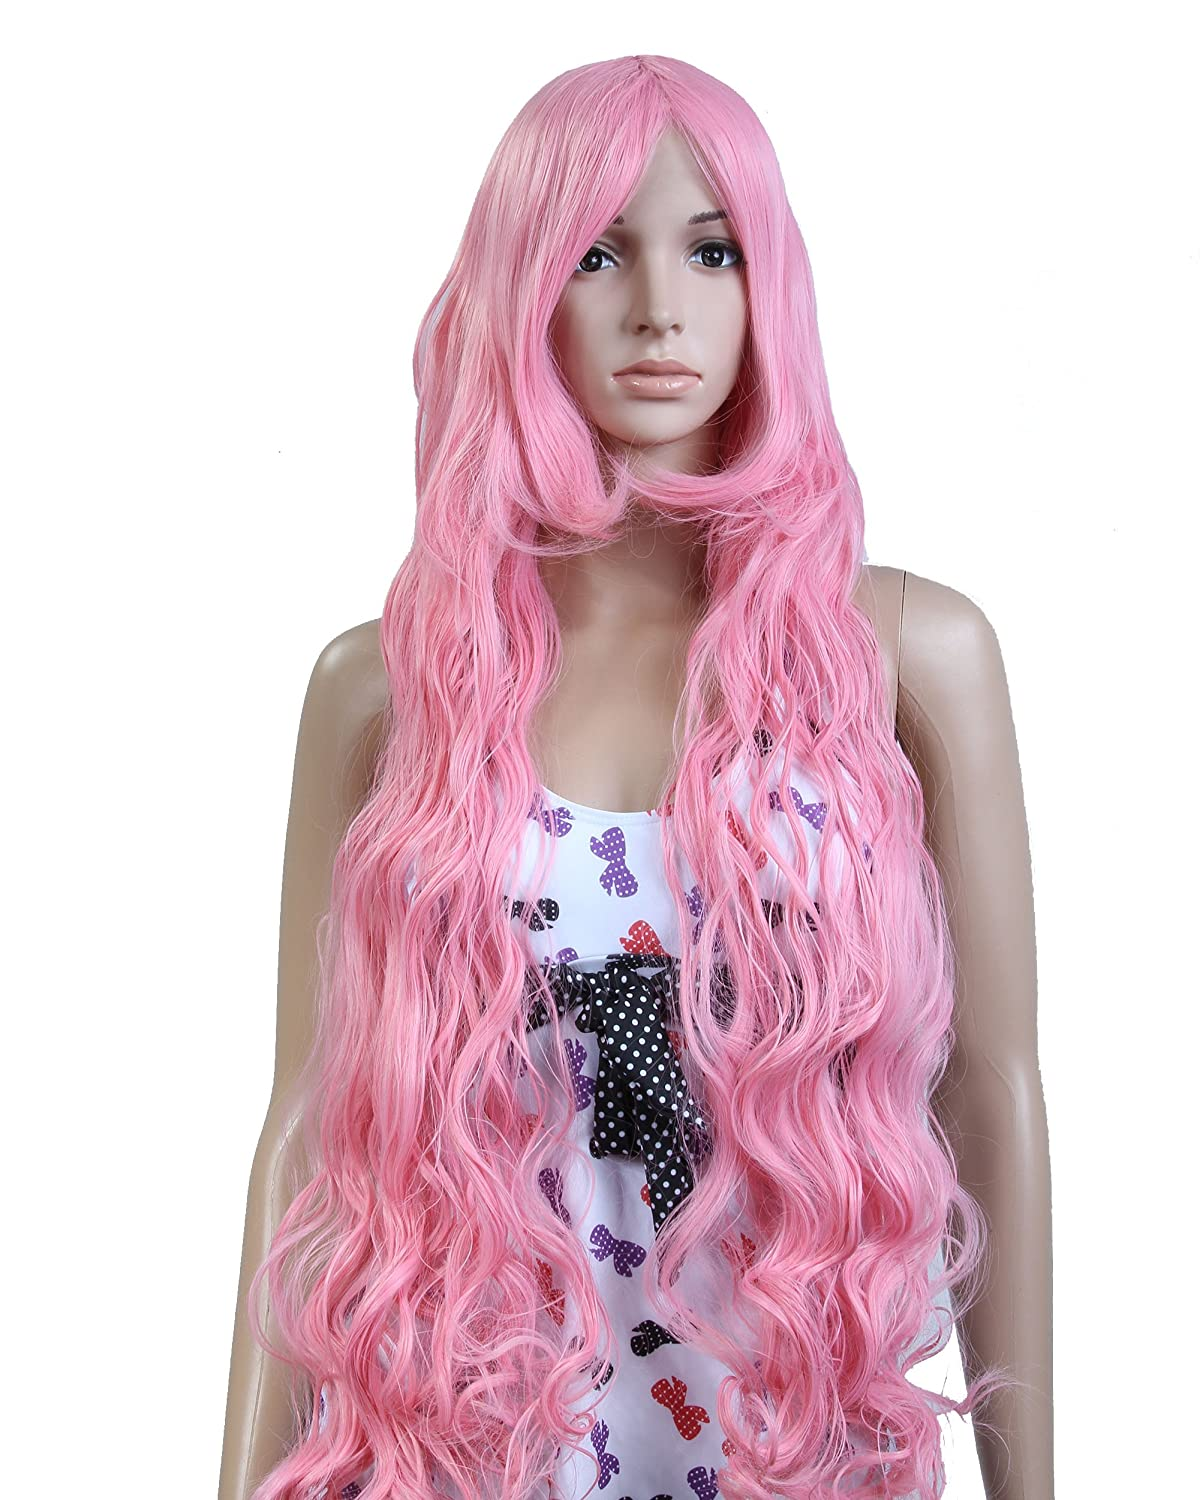 Amazon Cool2dayR Anime Costume Long Curly Pink Hair Cosplay Party Wig ModelJF010124 Beauty